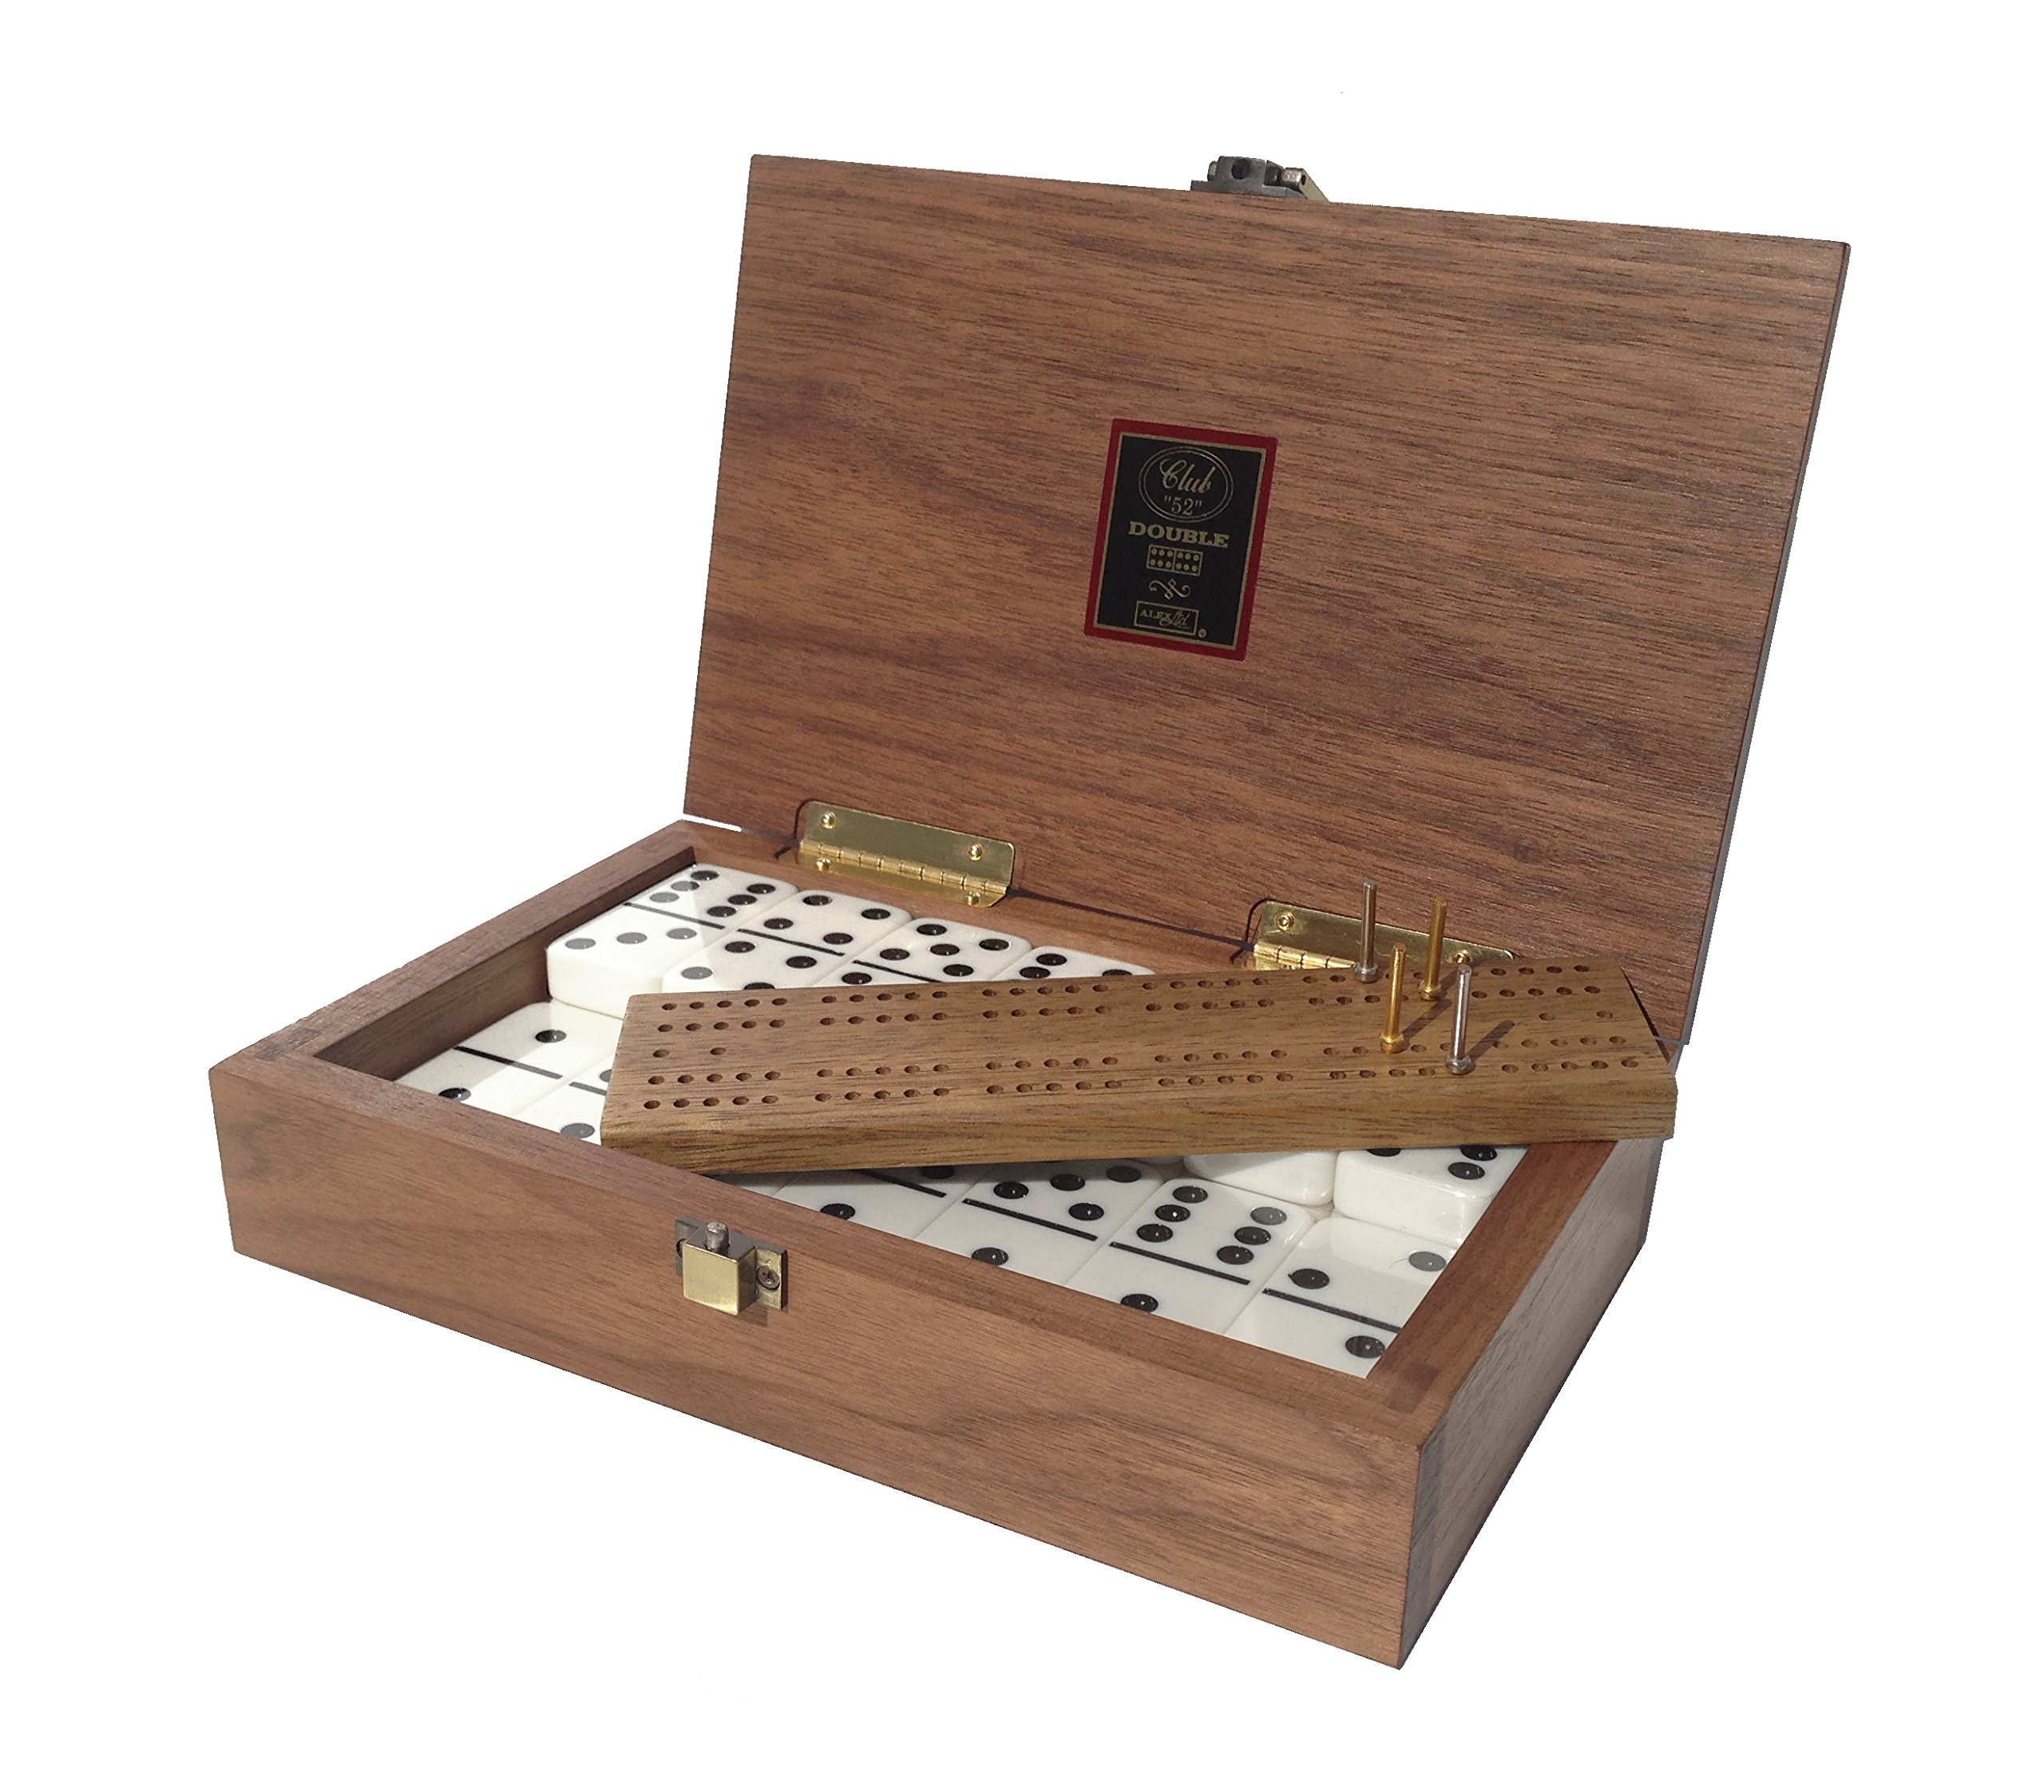 ''Club 52'' Luxury Domino Set with Black Walnut Case - Professional Tournament Domino Set - 28 Indestructible Double-Six Dominoes